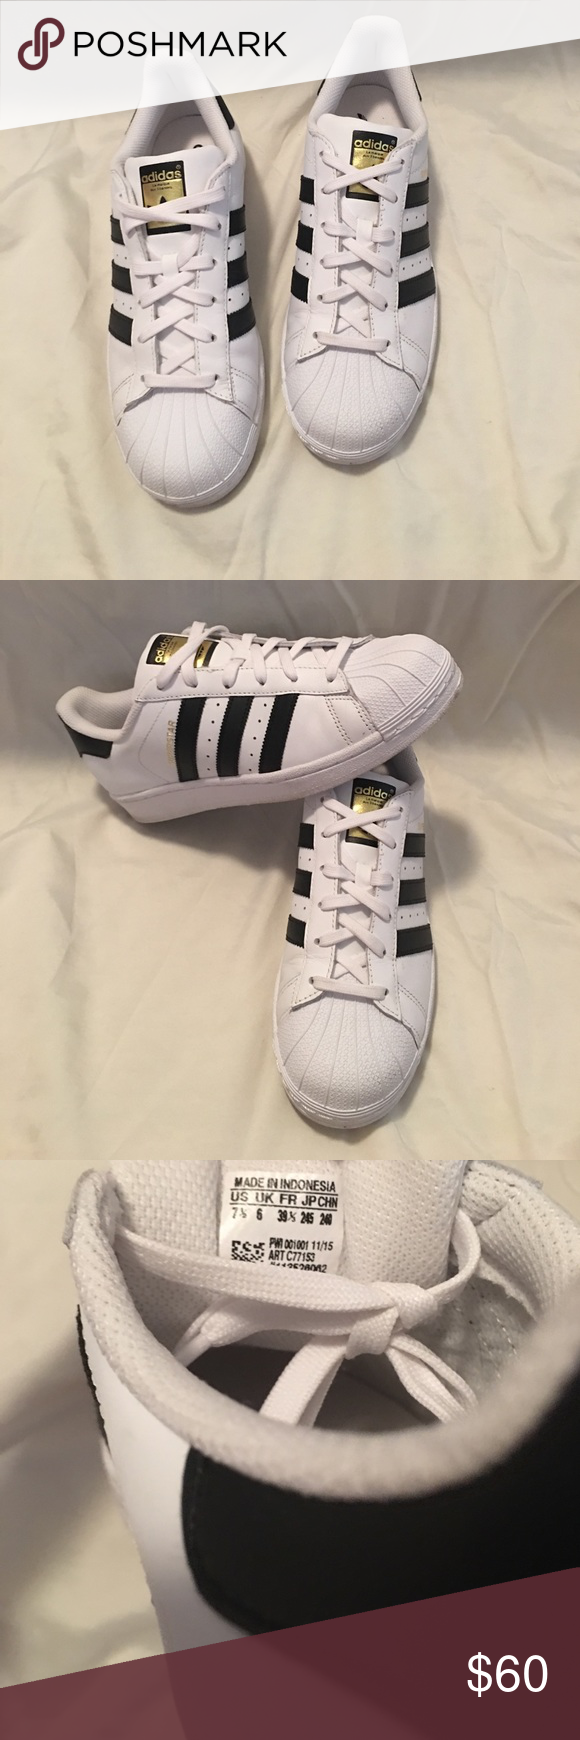 9f0b1b5fa0e2 PRICE DROP ‼ ‼️ADIDAS SUPERSTAR Worn twice. Looked weird on my feet. Size  7.5. I d say the run big. White   black with gold adidas logo Adidas Shoes  ...